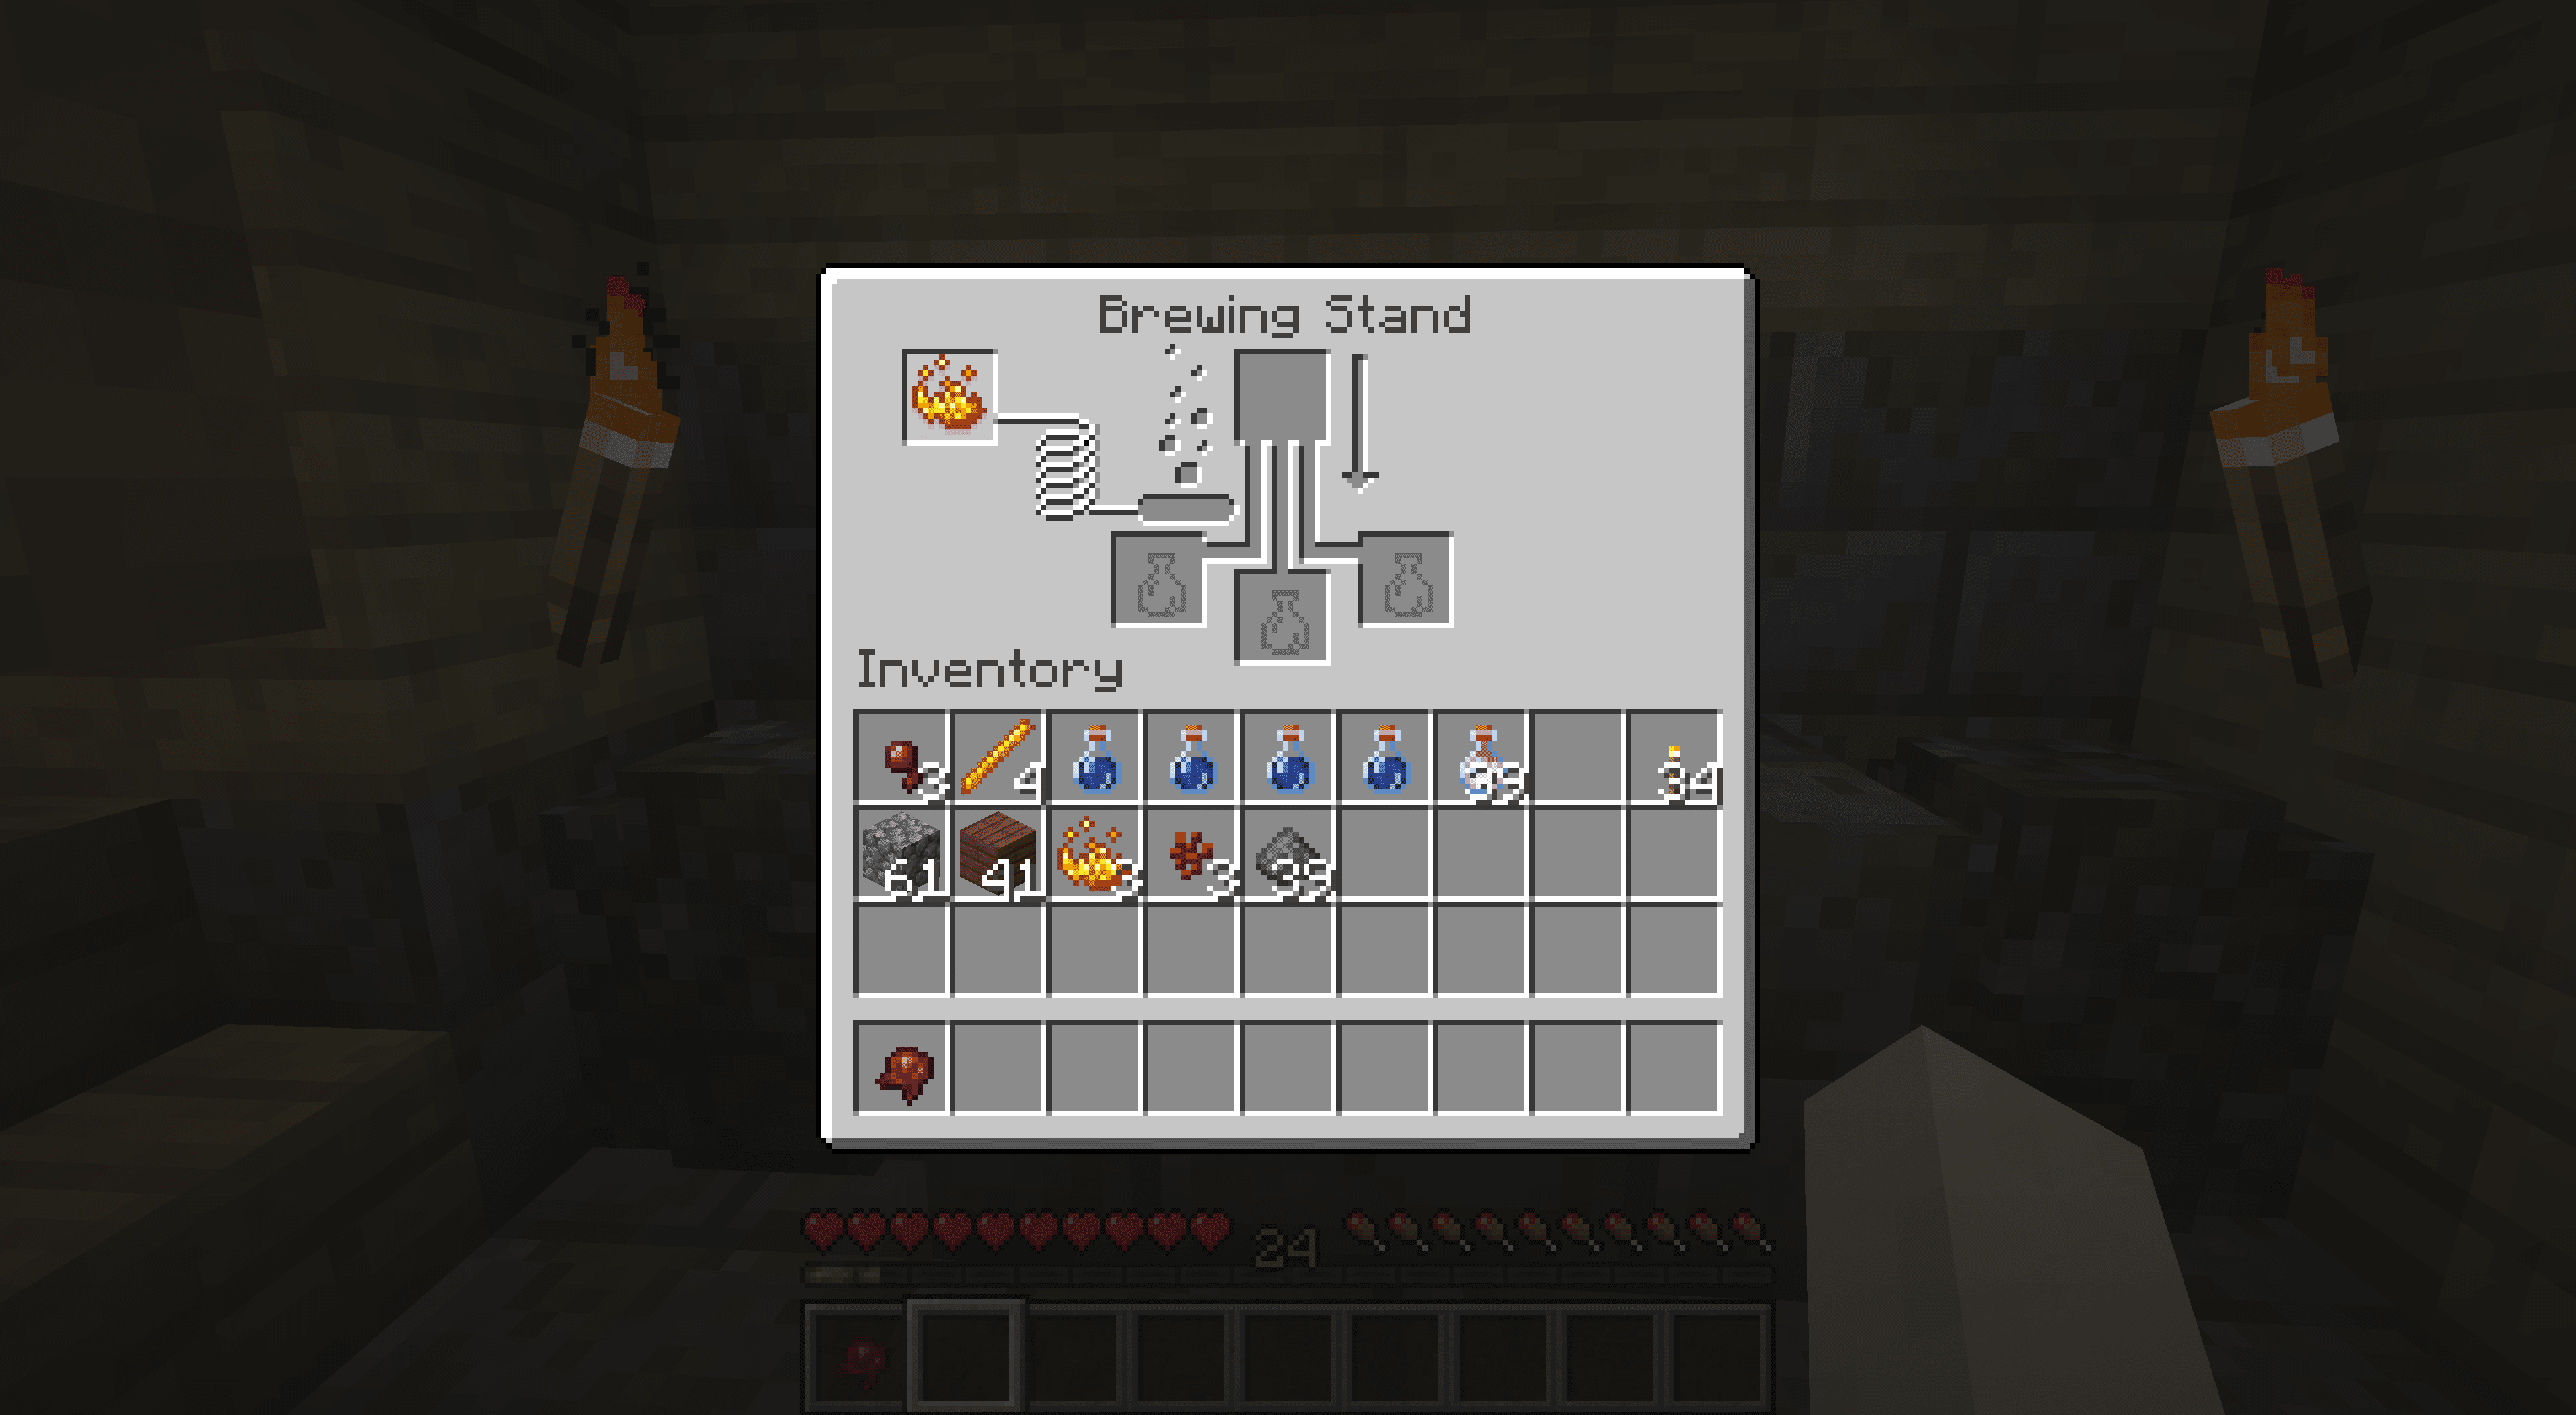 Placing blaze powder in a brewing stand.